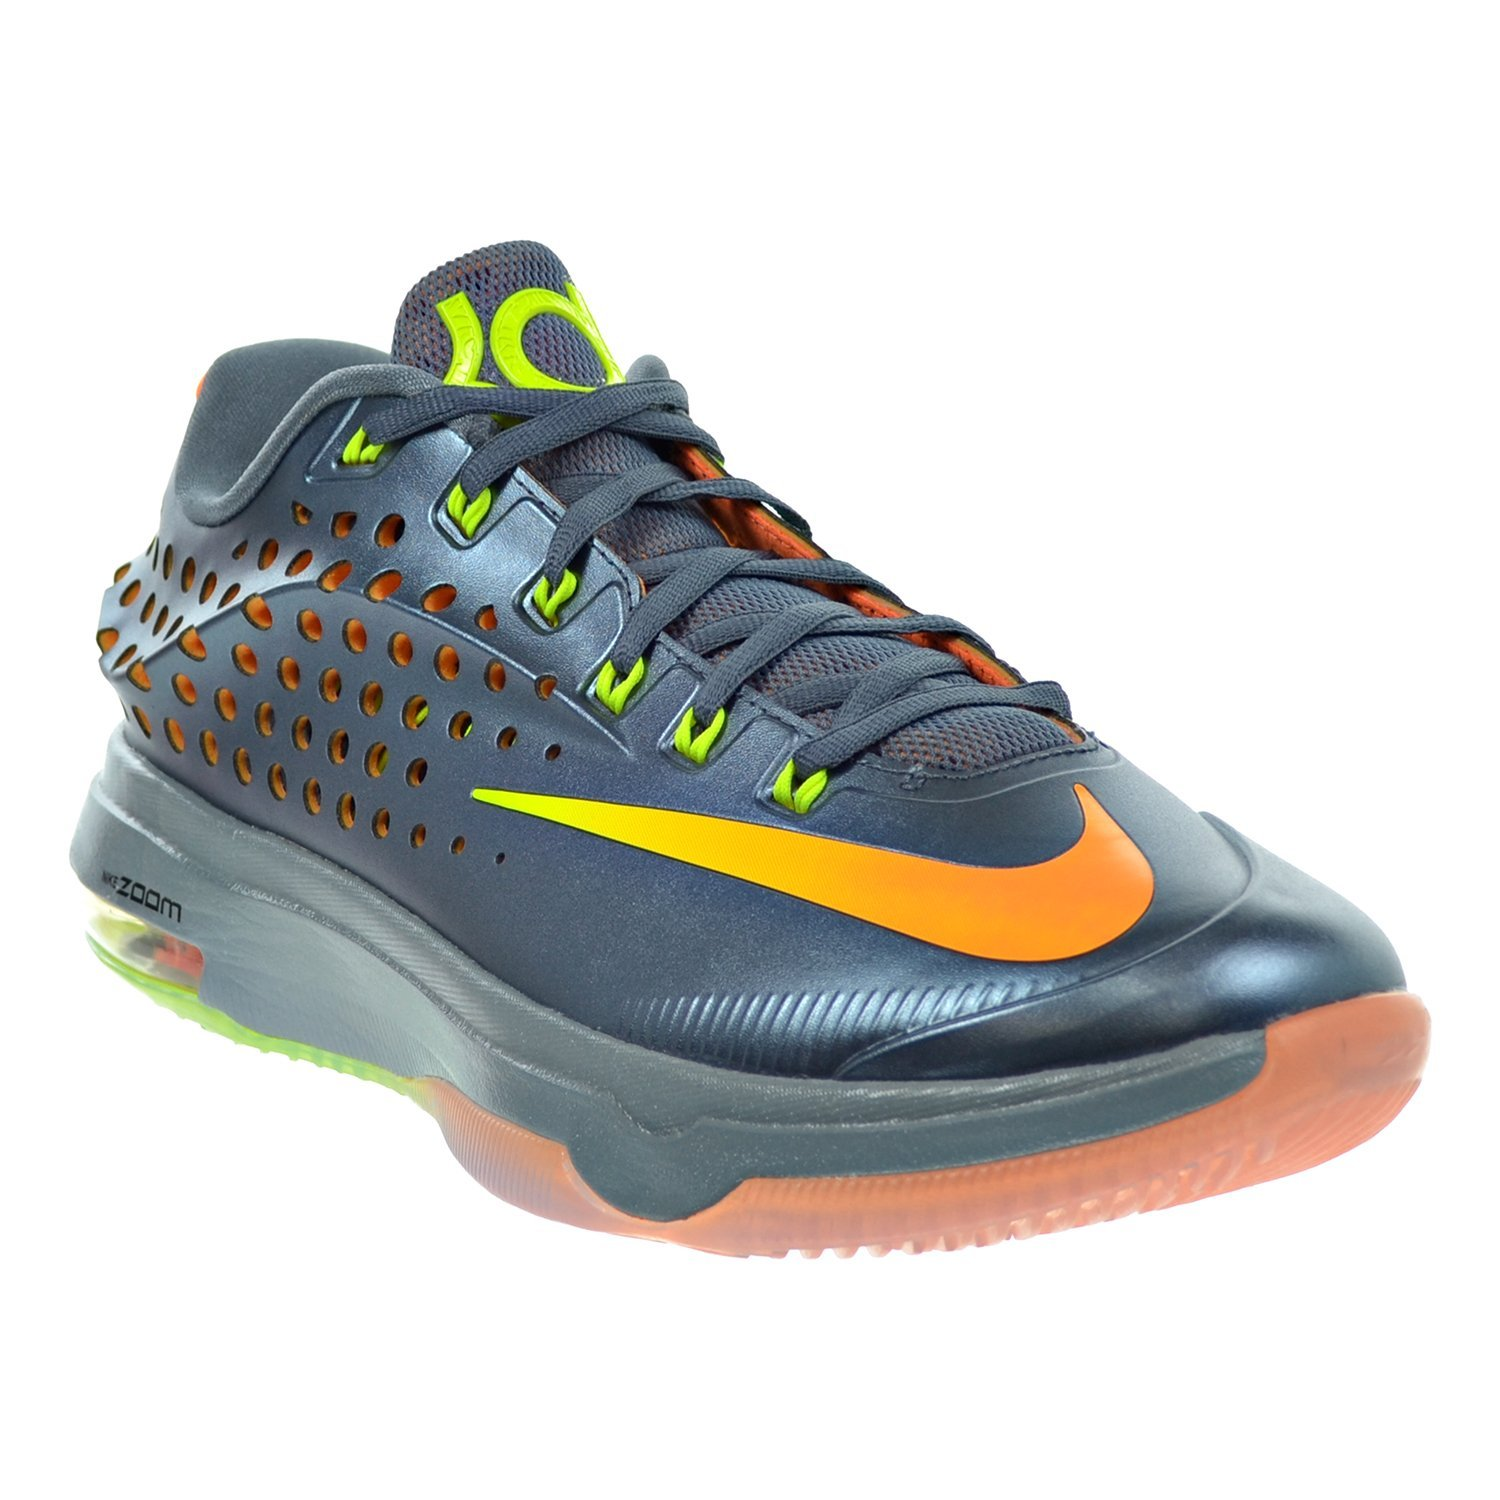 buy online 5a649 a2900 Amazon.com   Nike KD VII Elite Men s Shoes Blue Graphite Volt Bright Citrus Dove  Grey 724349-478   Basketball